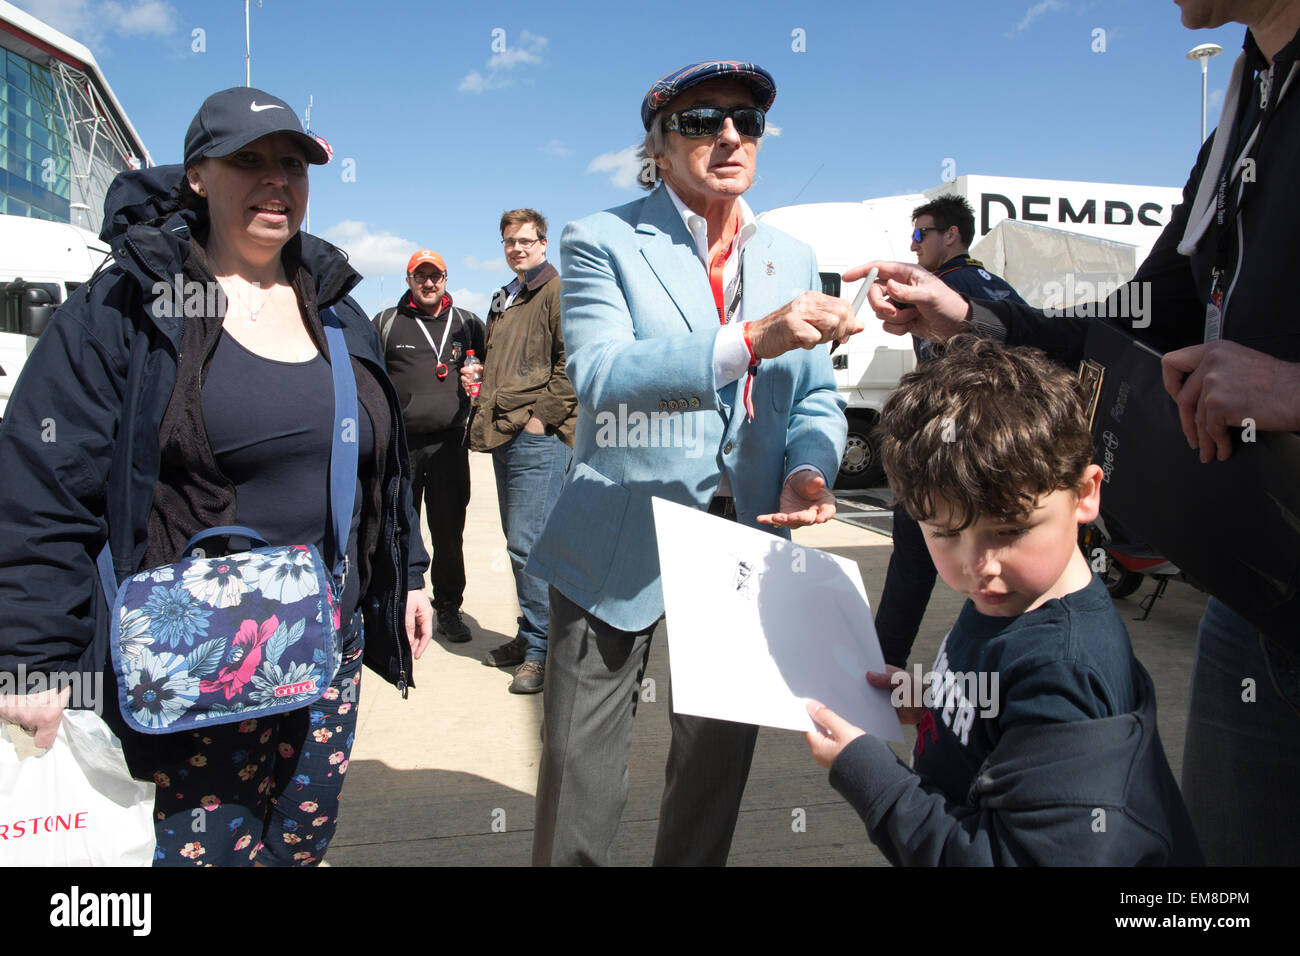 Sir Jackie Stewart, legendary former Formula One racing driver, signing autographs at Silverstone racing circuit, - Stock Image